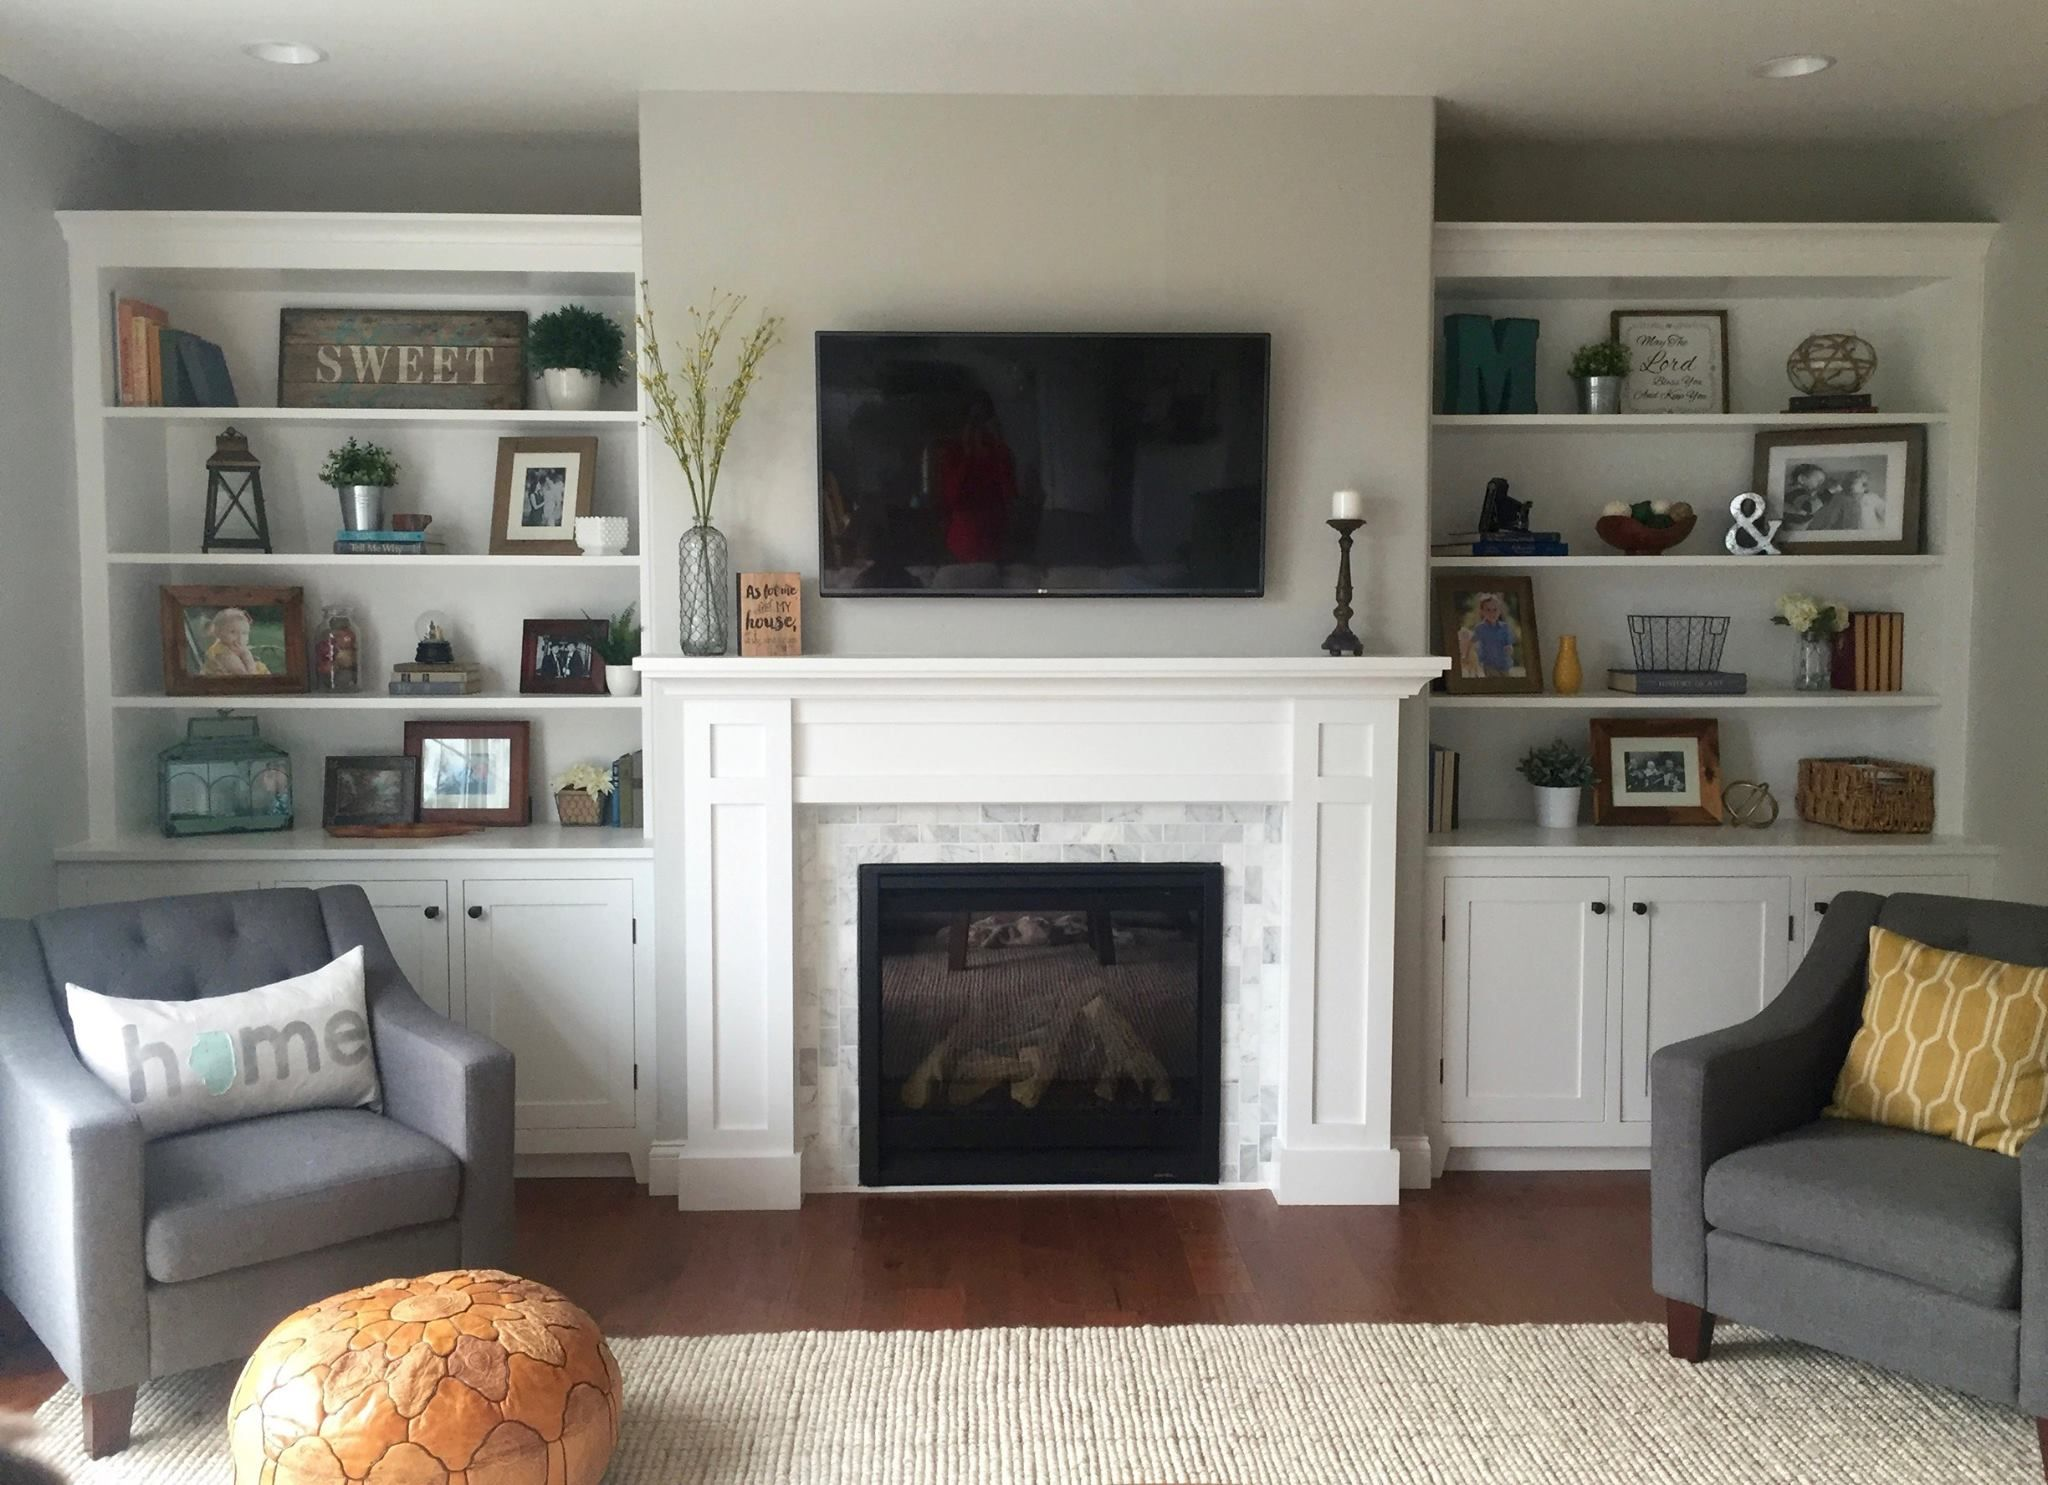 How To Build A Built In The Cabinets Woodworking Living Room